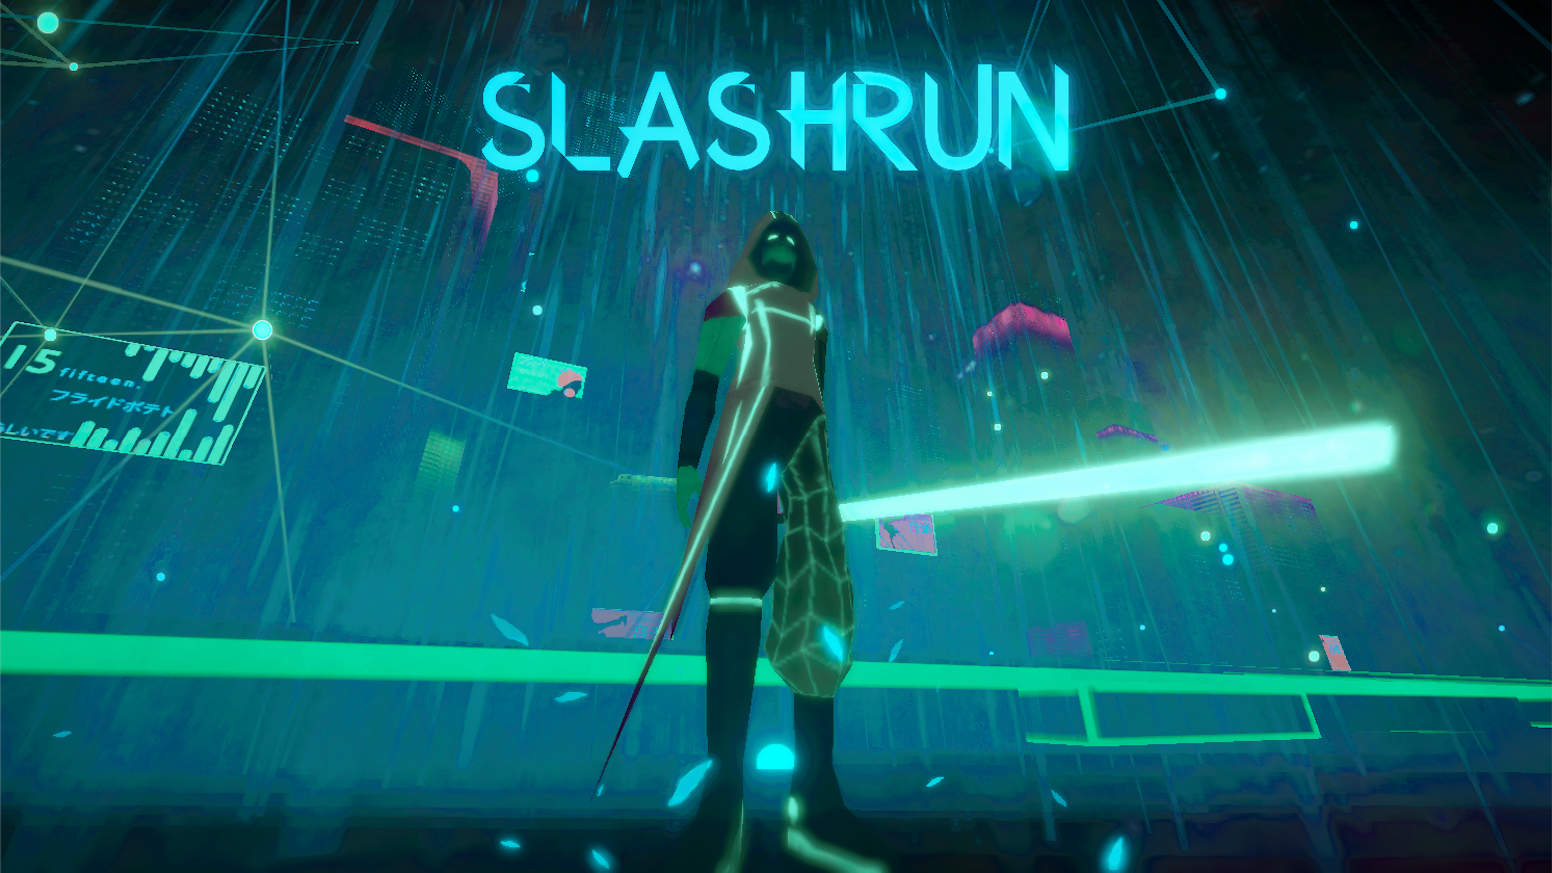 SLASHRUN - Cyberpunk runner with swipe blade action by Piegay Romain